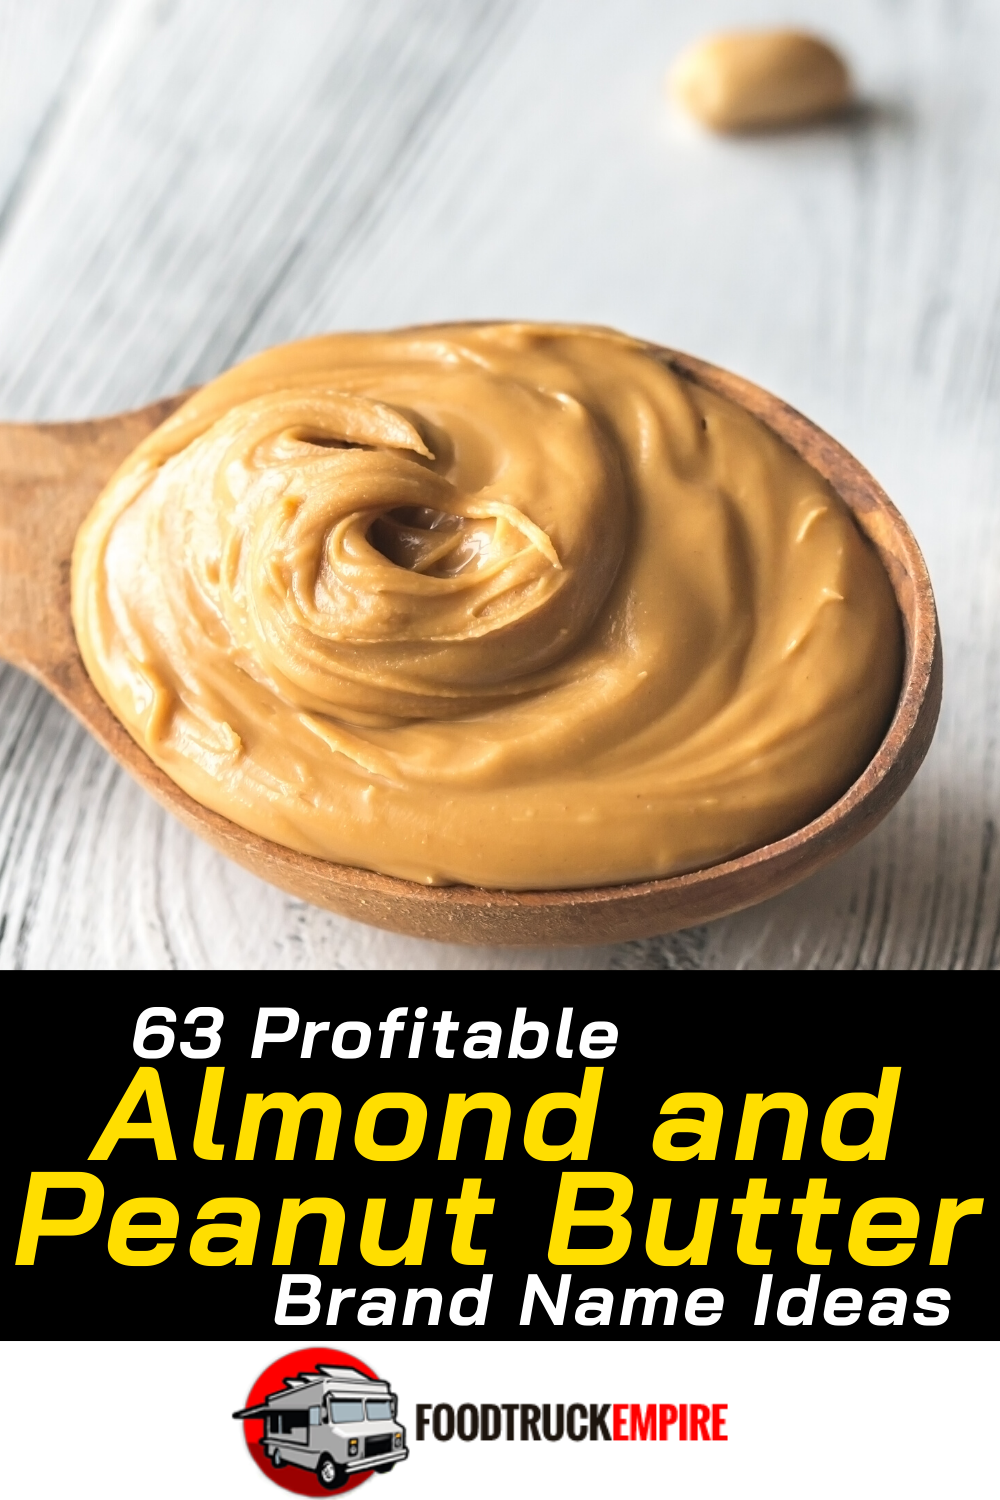 63 Profitable Peanut Butter Name Ideas